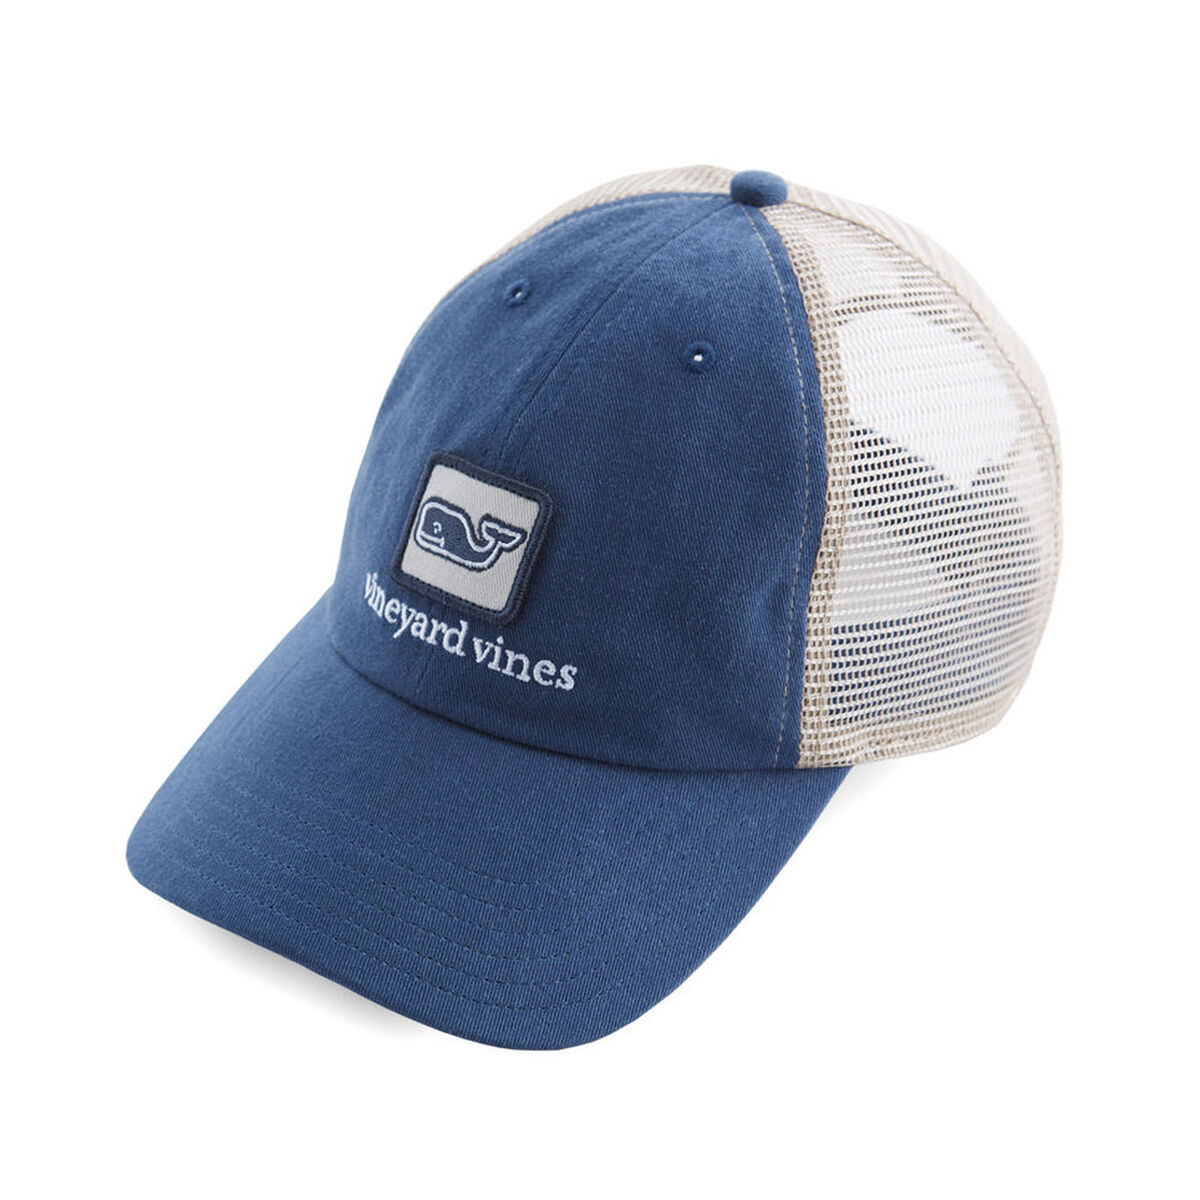 056f4e28a73bf Images. Vineyard Vines Low Profile Deconstructed Whale Trucker Hat